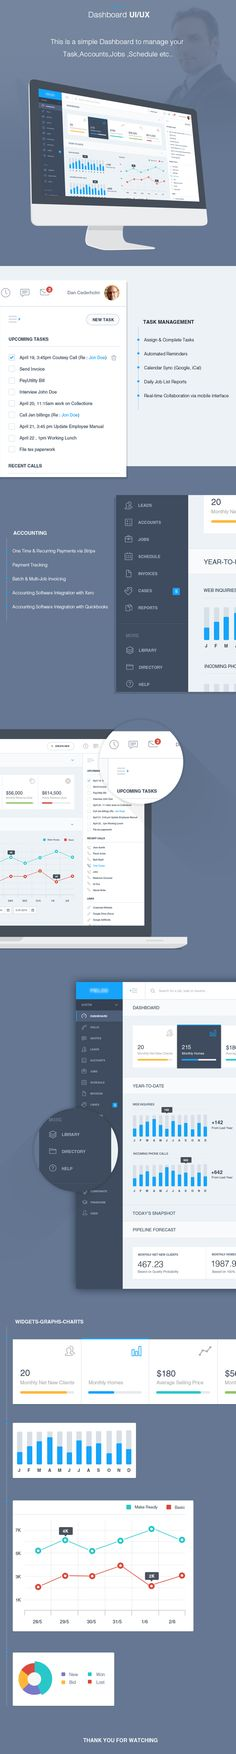 Dashboard Admin for Task/Accounting Management UI/UX on Behance